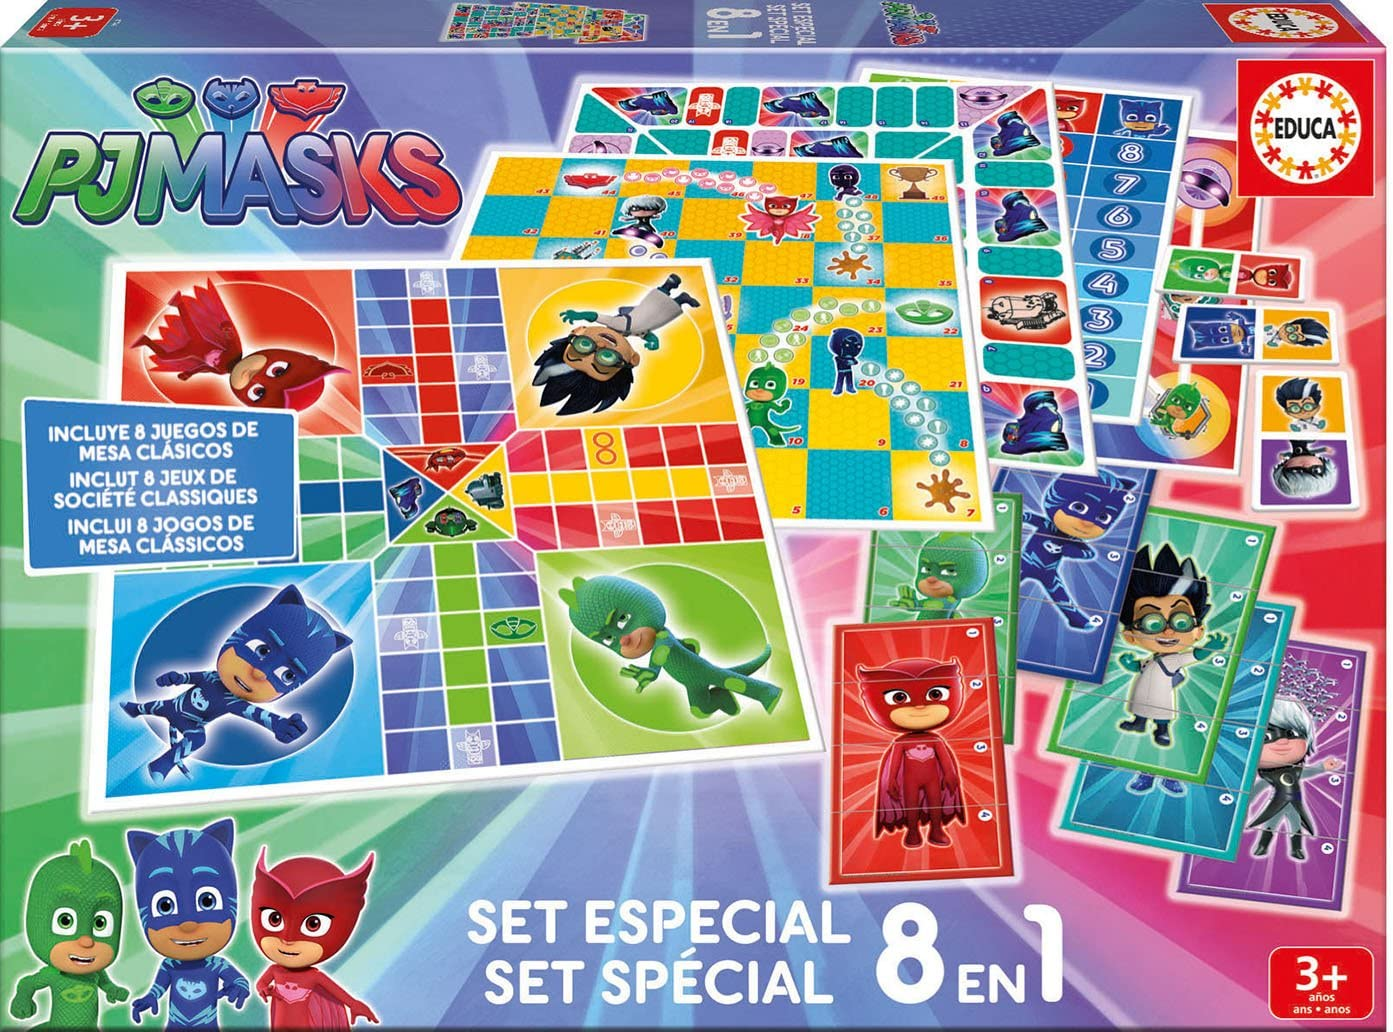 PJ Masks Juegos Reunidos 8 en 1 (Educa Borrás 17449): Amazon.es ...